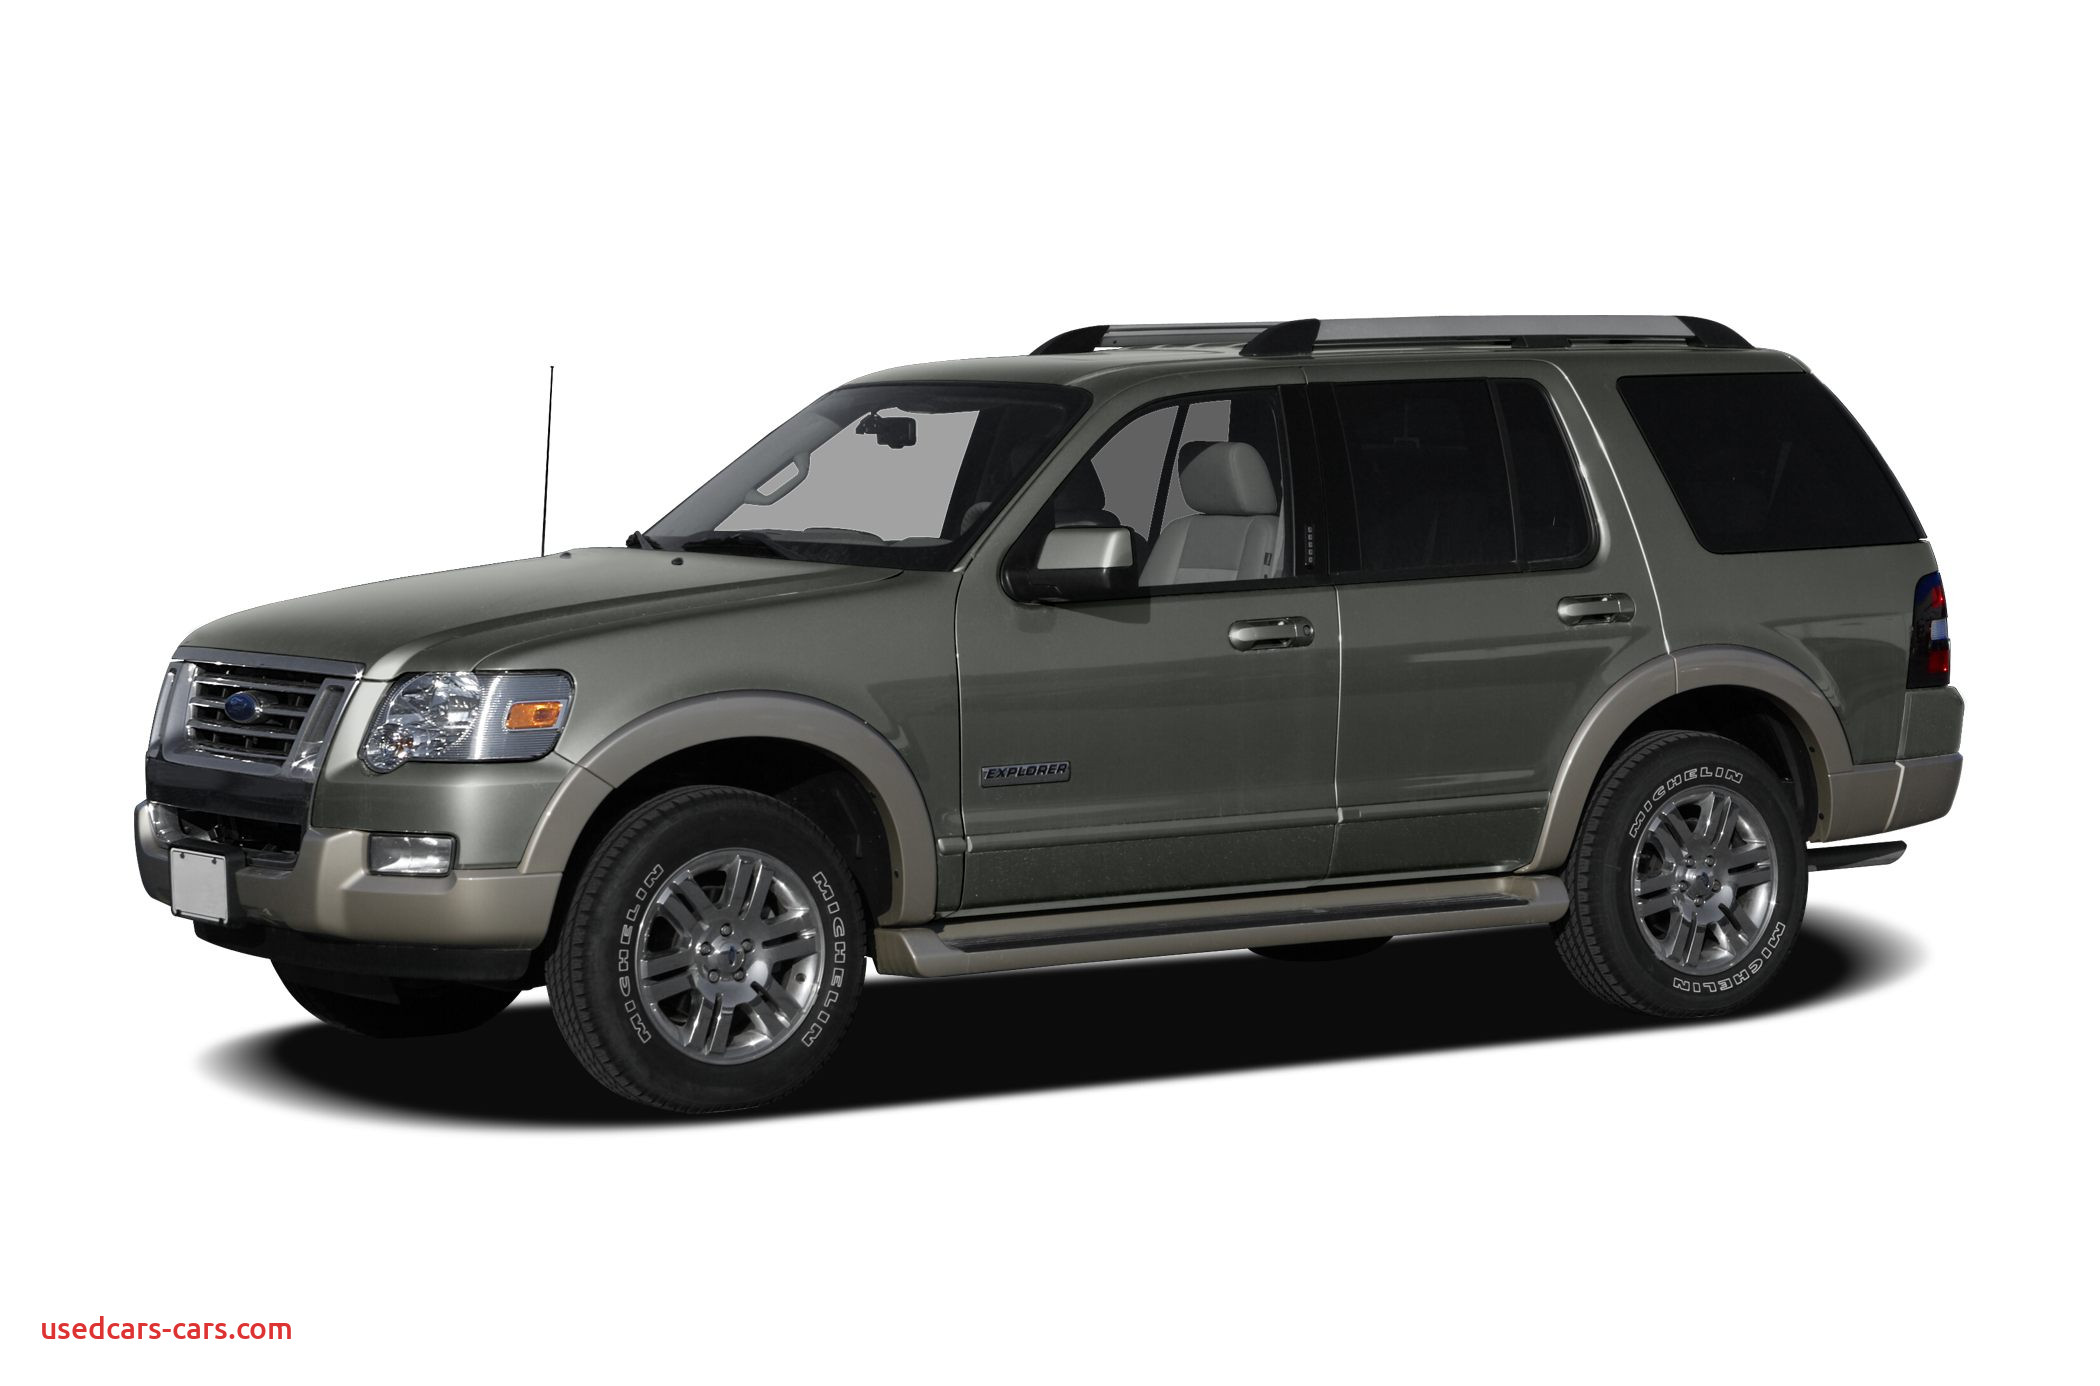 Ford Explorer V8 Awesome 2007 ford Explorer Limited V8 4dr 4x4 Specs and Prices